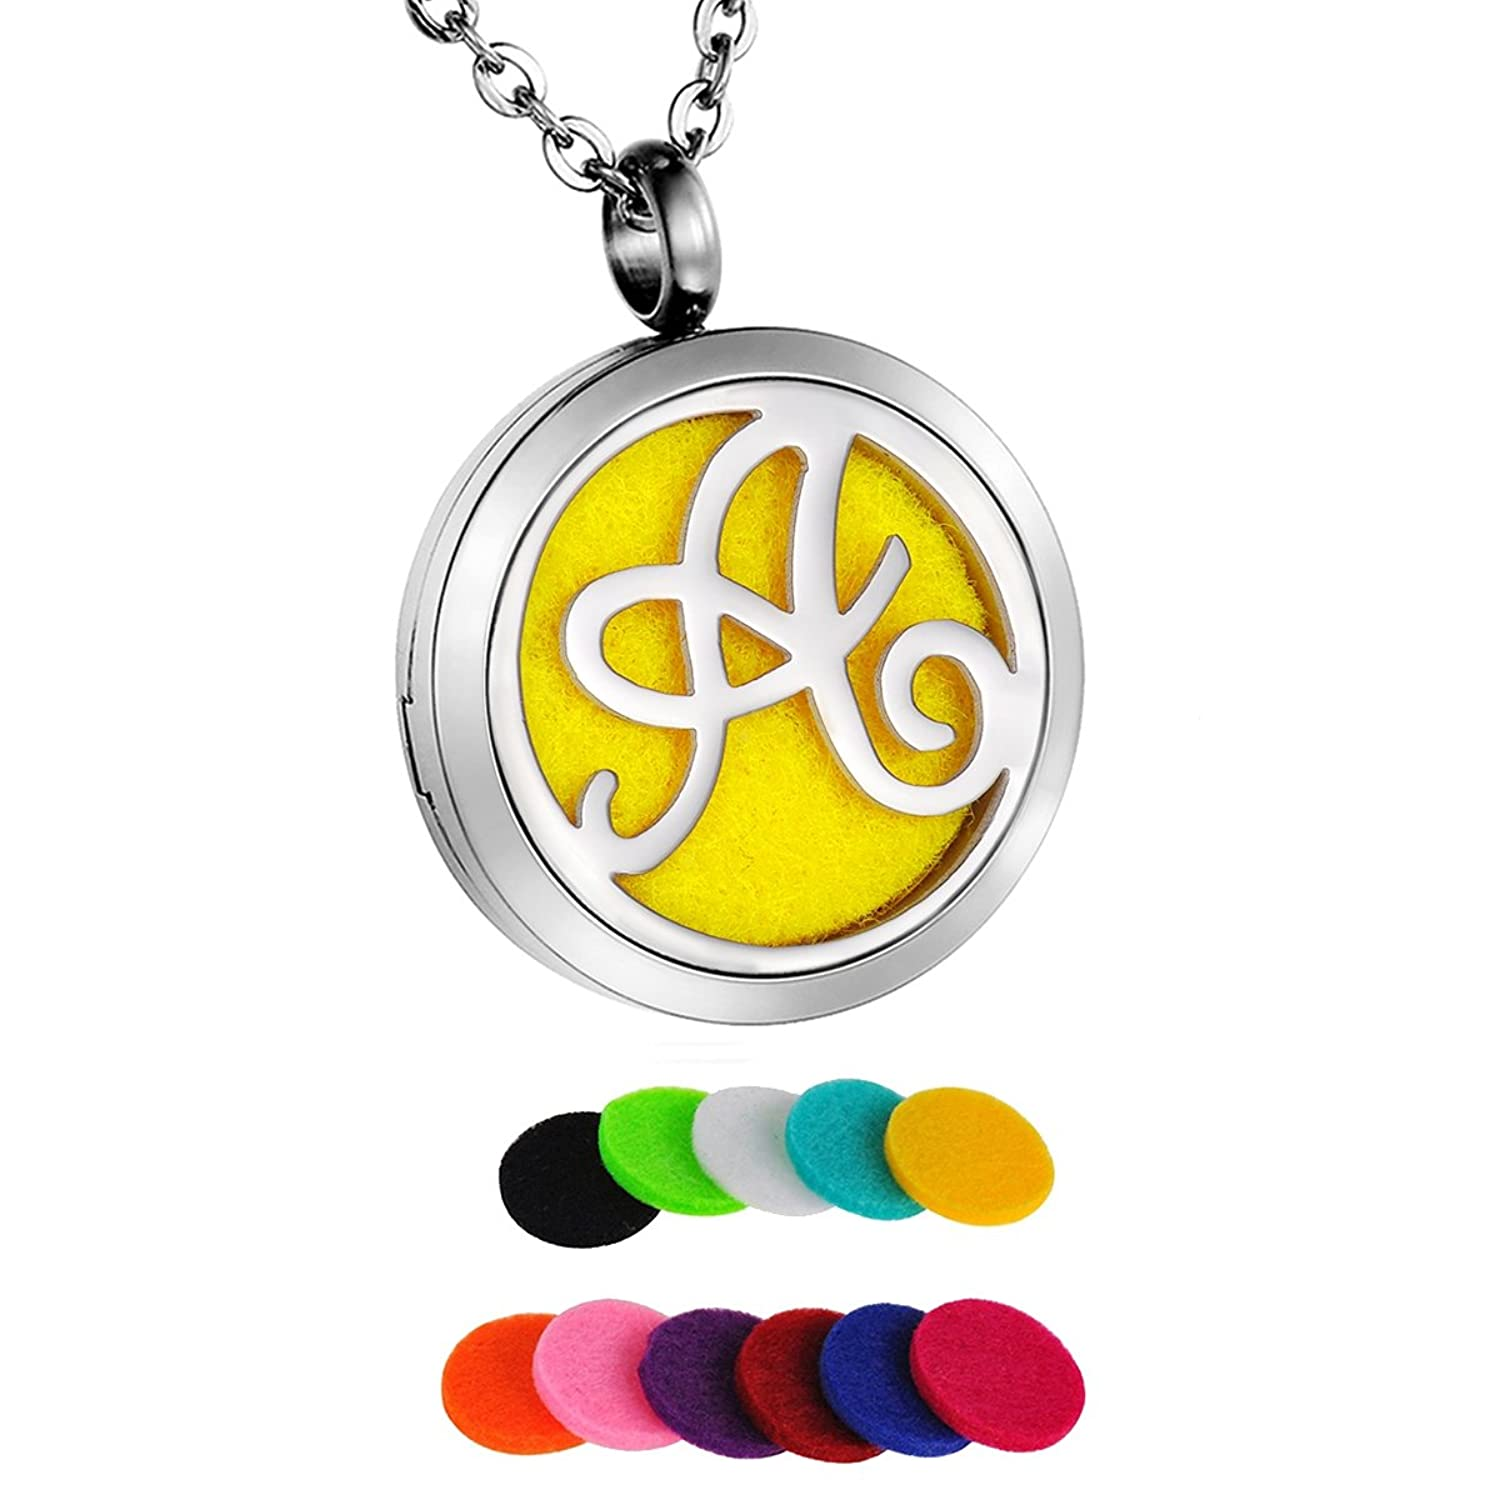 style vintage design necklace scroll pendant silver monogram sterling engravable lockets